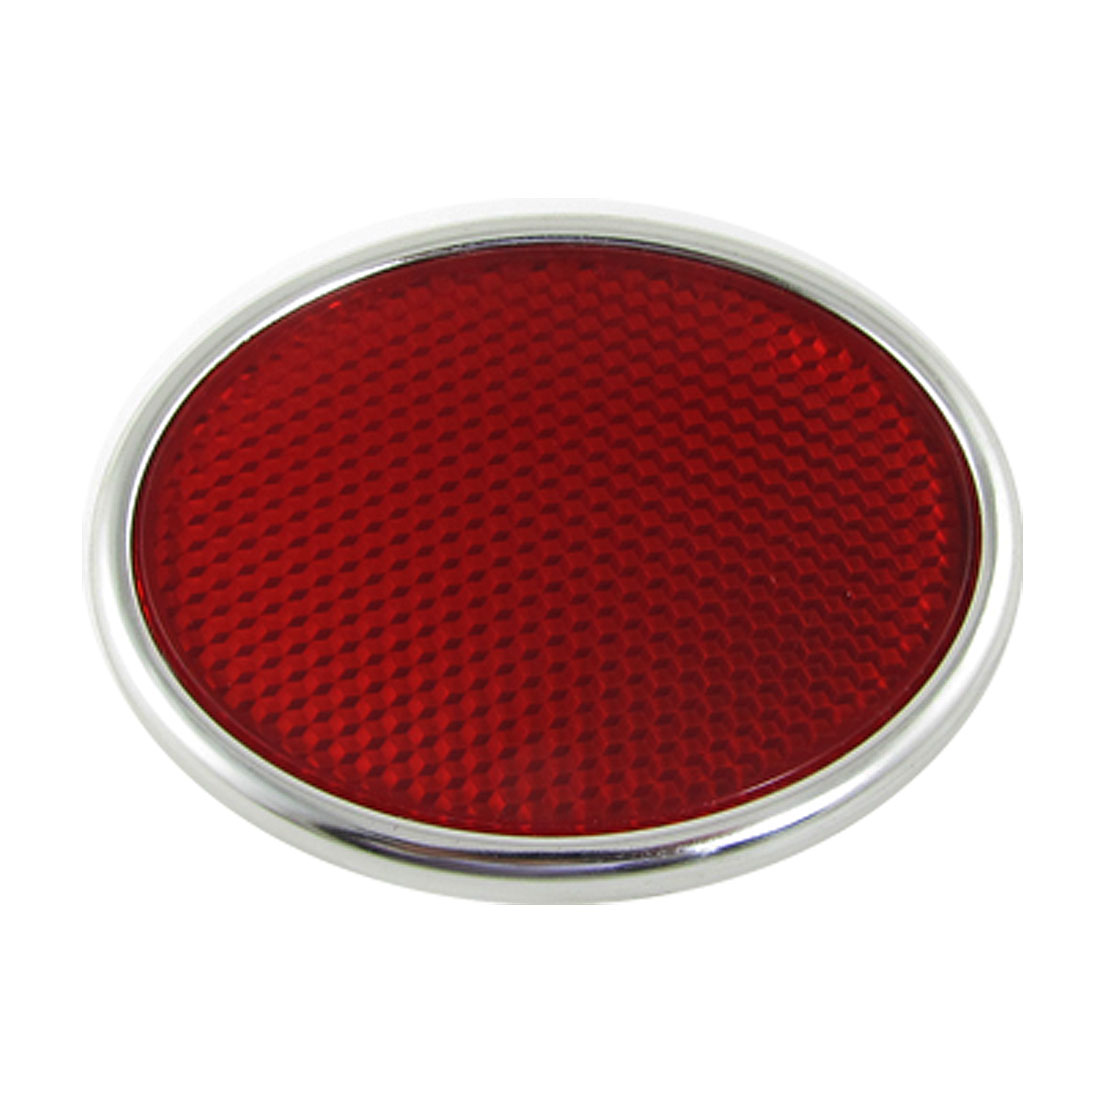 Auto Car Safety Reflective Sticker Decoration Red Silver Tone